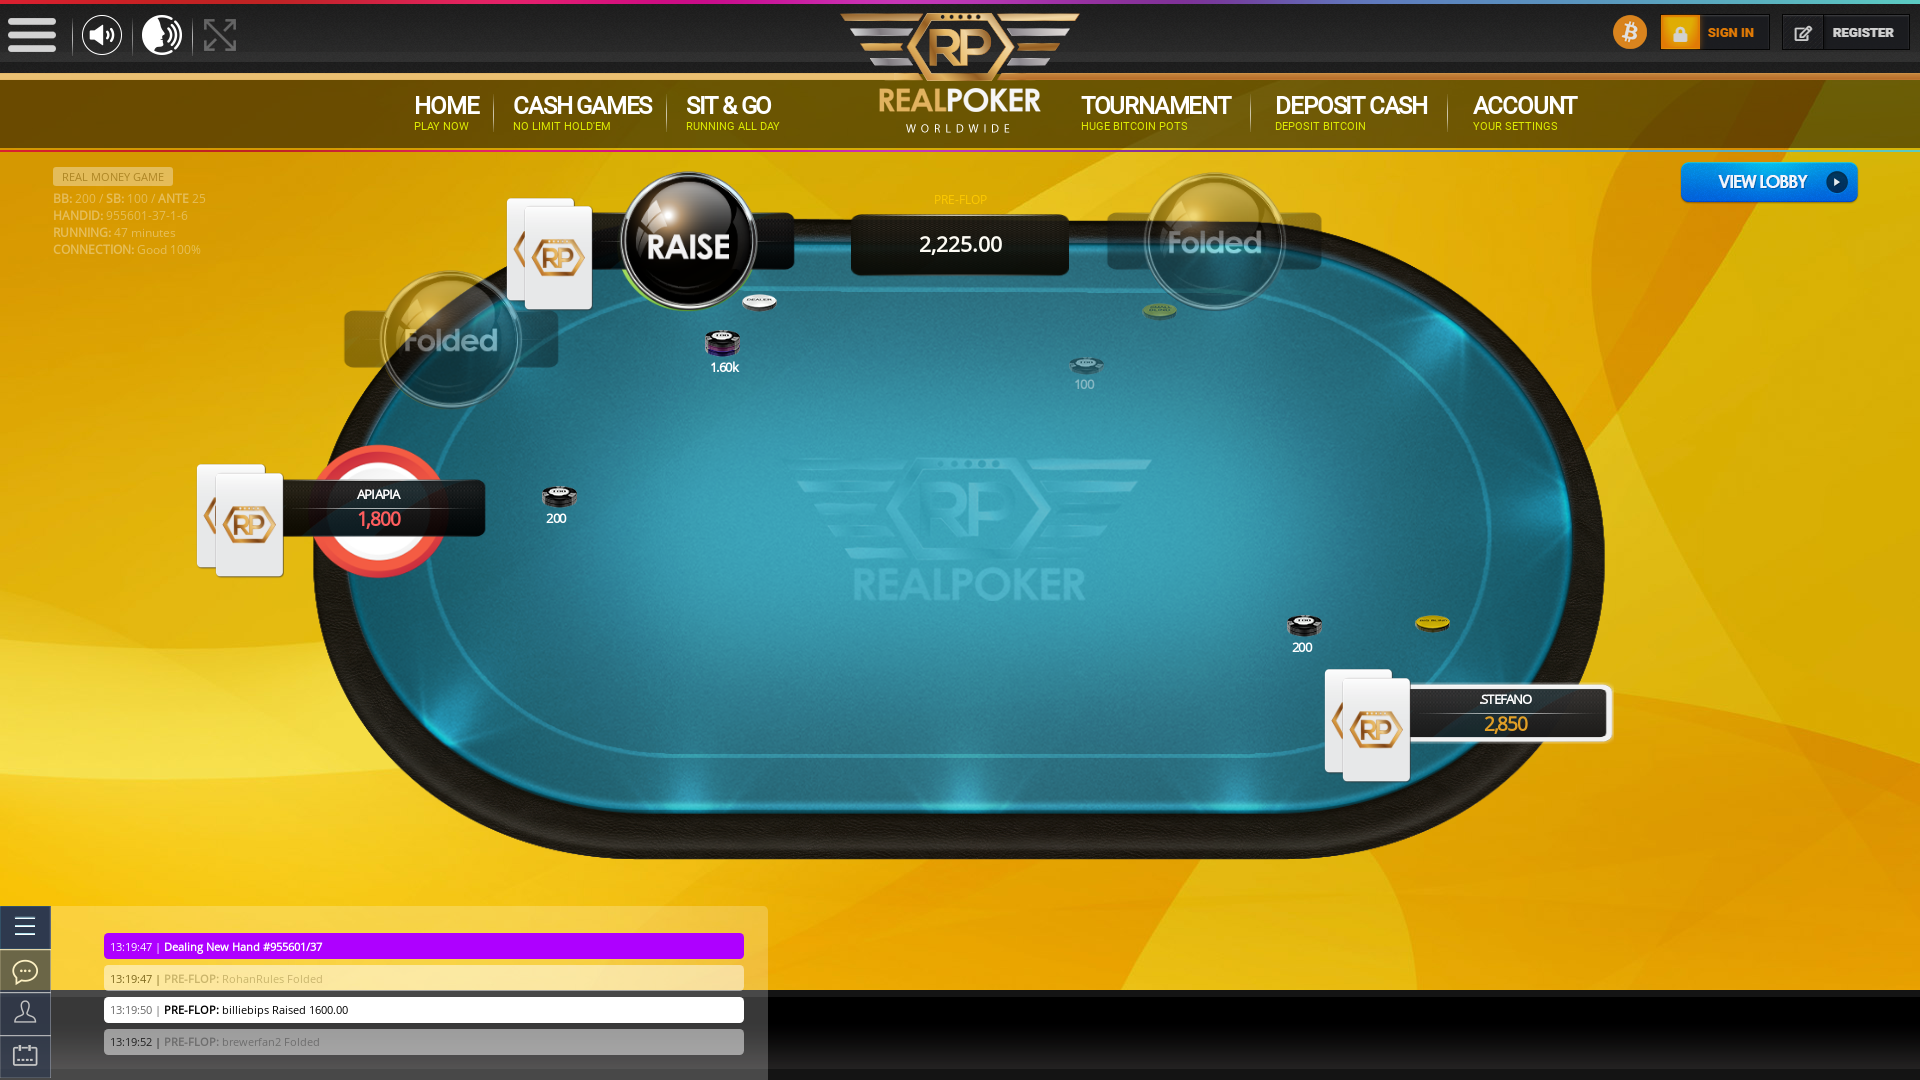 10 player texas holdem table at real poker with the table id 955601